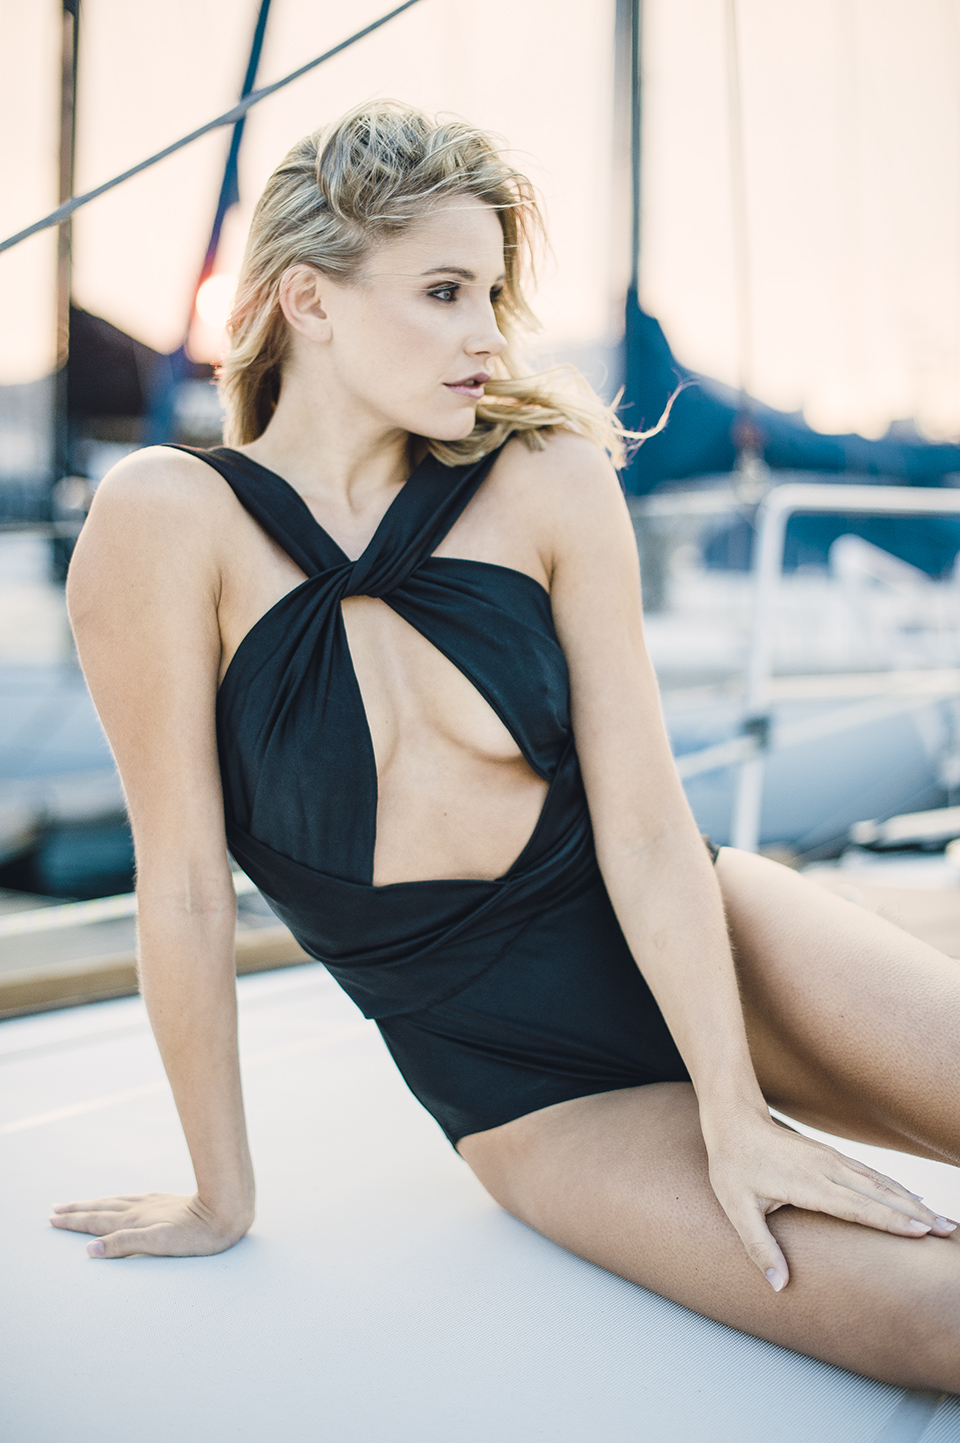 RyanParker_CapeTown_Photographer_Editorial_Fashion_Yacht_Nautical_RyanParker_CapeTown_Photographer_Editorial_Fashion_Yacht_Nautical_DSC_1686.jpg